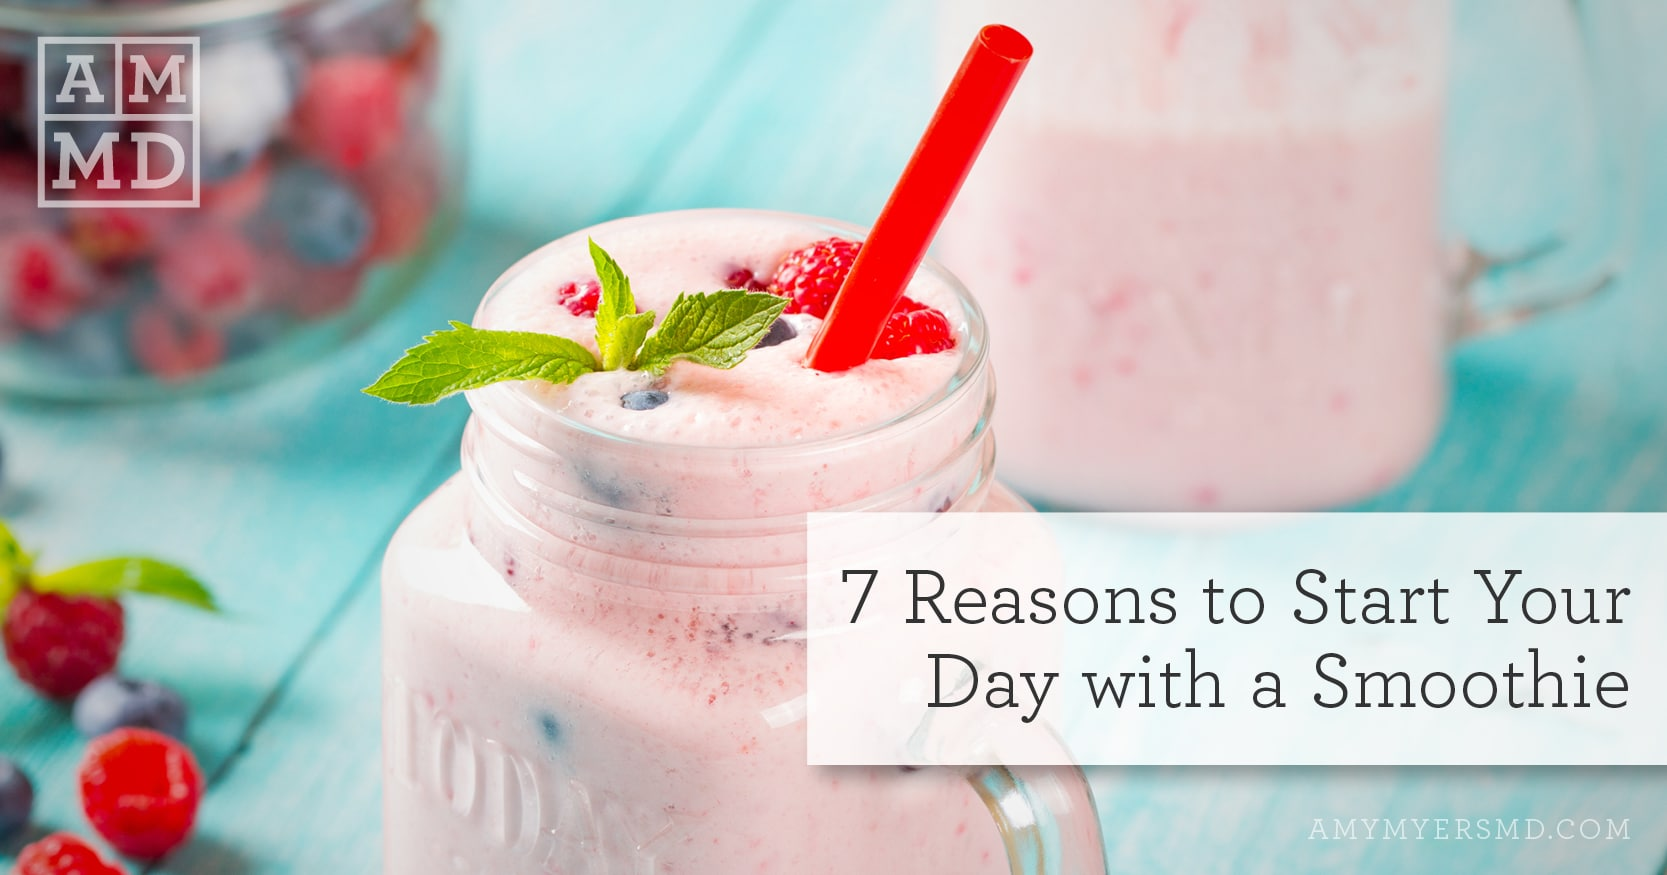 7 Reasons to Start Your Day with a Smoothie - Featured Image - Amy Myers MD